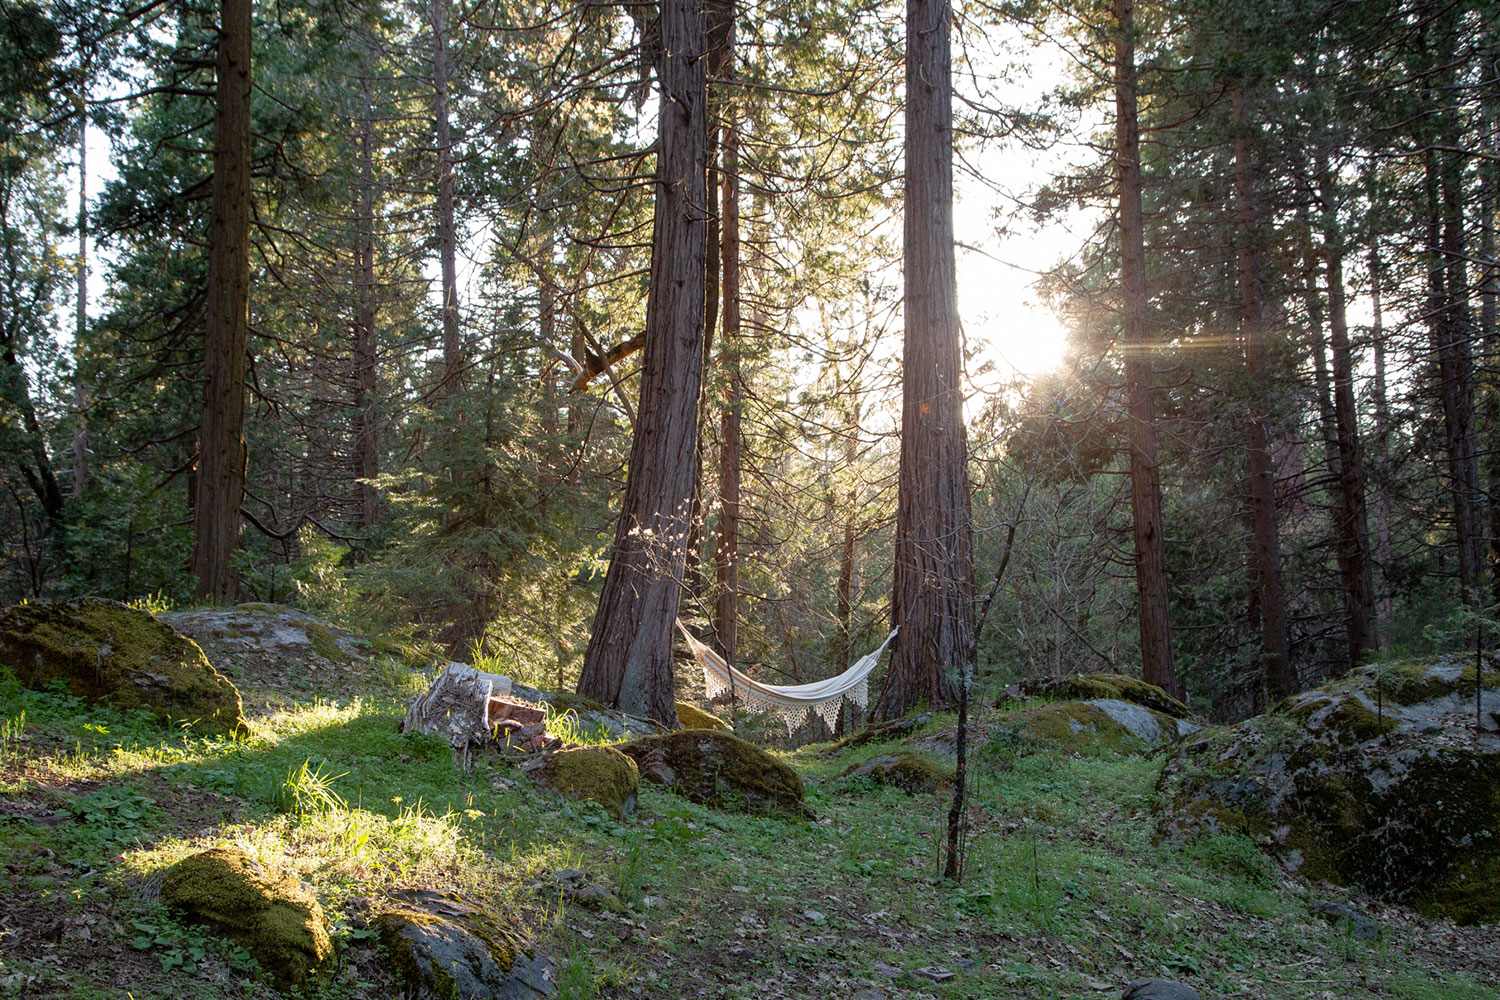 A Self Guided Retreat - Get into your most authentic, worthy, intuitive self and be immersed in Nature.